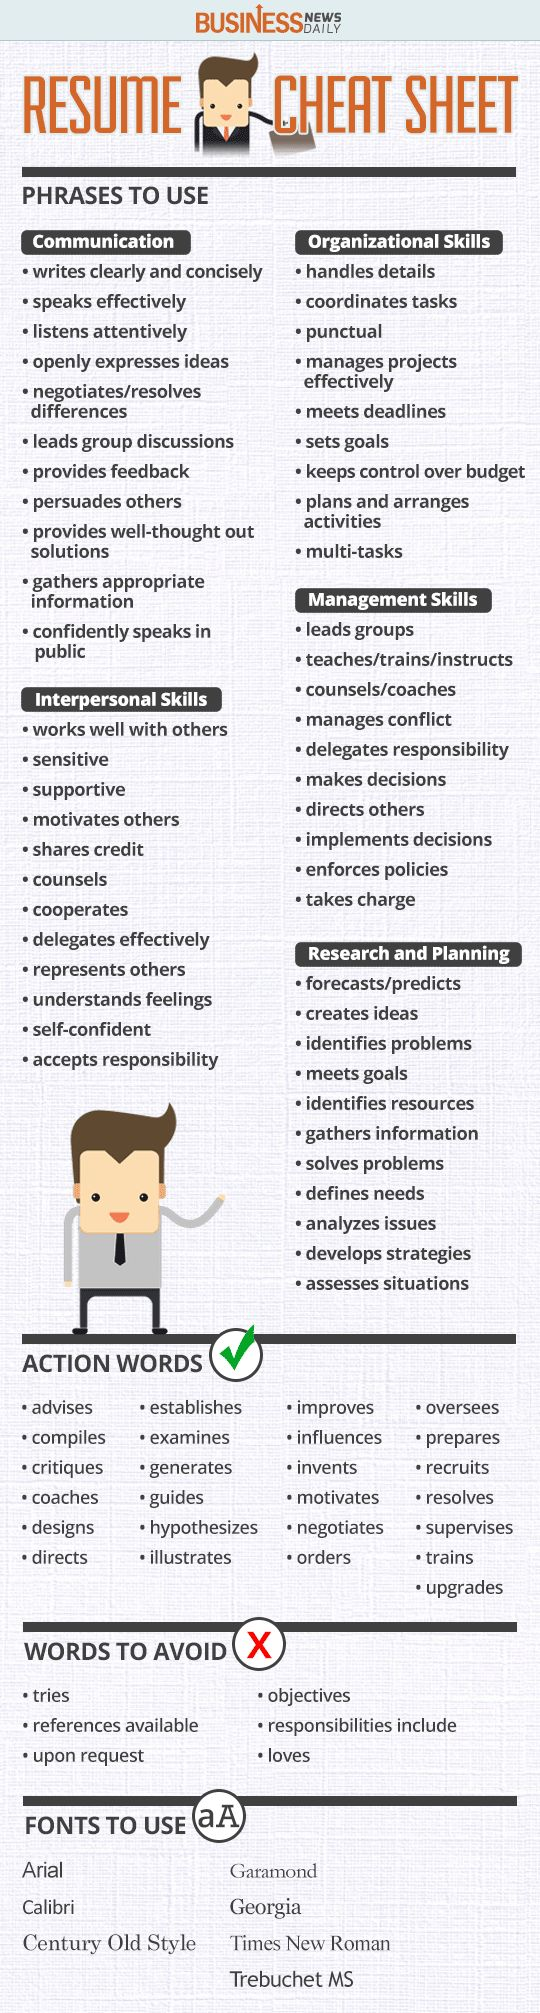 Opposenewapstandardsus  Unique  Ideas About Resume On Pinterest  Cv Format Resume Cv And  With Inspiring Resume Cheat Sheet Infographic Andrews Almost Done With A Complete Unit On Employment Which With Breathtaking Office Clerk Resume Also Sample Resumes For College Students In Addition Resume Heading And Restaurant General Manager Resume As Well As Janitorial Resume Additionally Google Resumes From Pinterestcom With Opposenewapstandardsus  Inspiring  Ideas About Resume On Pinterest  Cv Format Resume Cv And  With Breathtaking Resume Cheat Sheet Infographic Andrews Almost Done With A Complete Unit On Employment Which And Unique Office Clerk Resume Also Sample Resumes For College Students In Addition Resume Heading From Pinterestcom